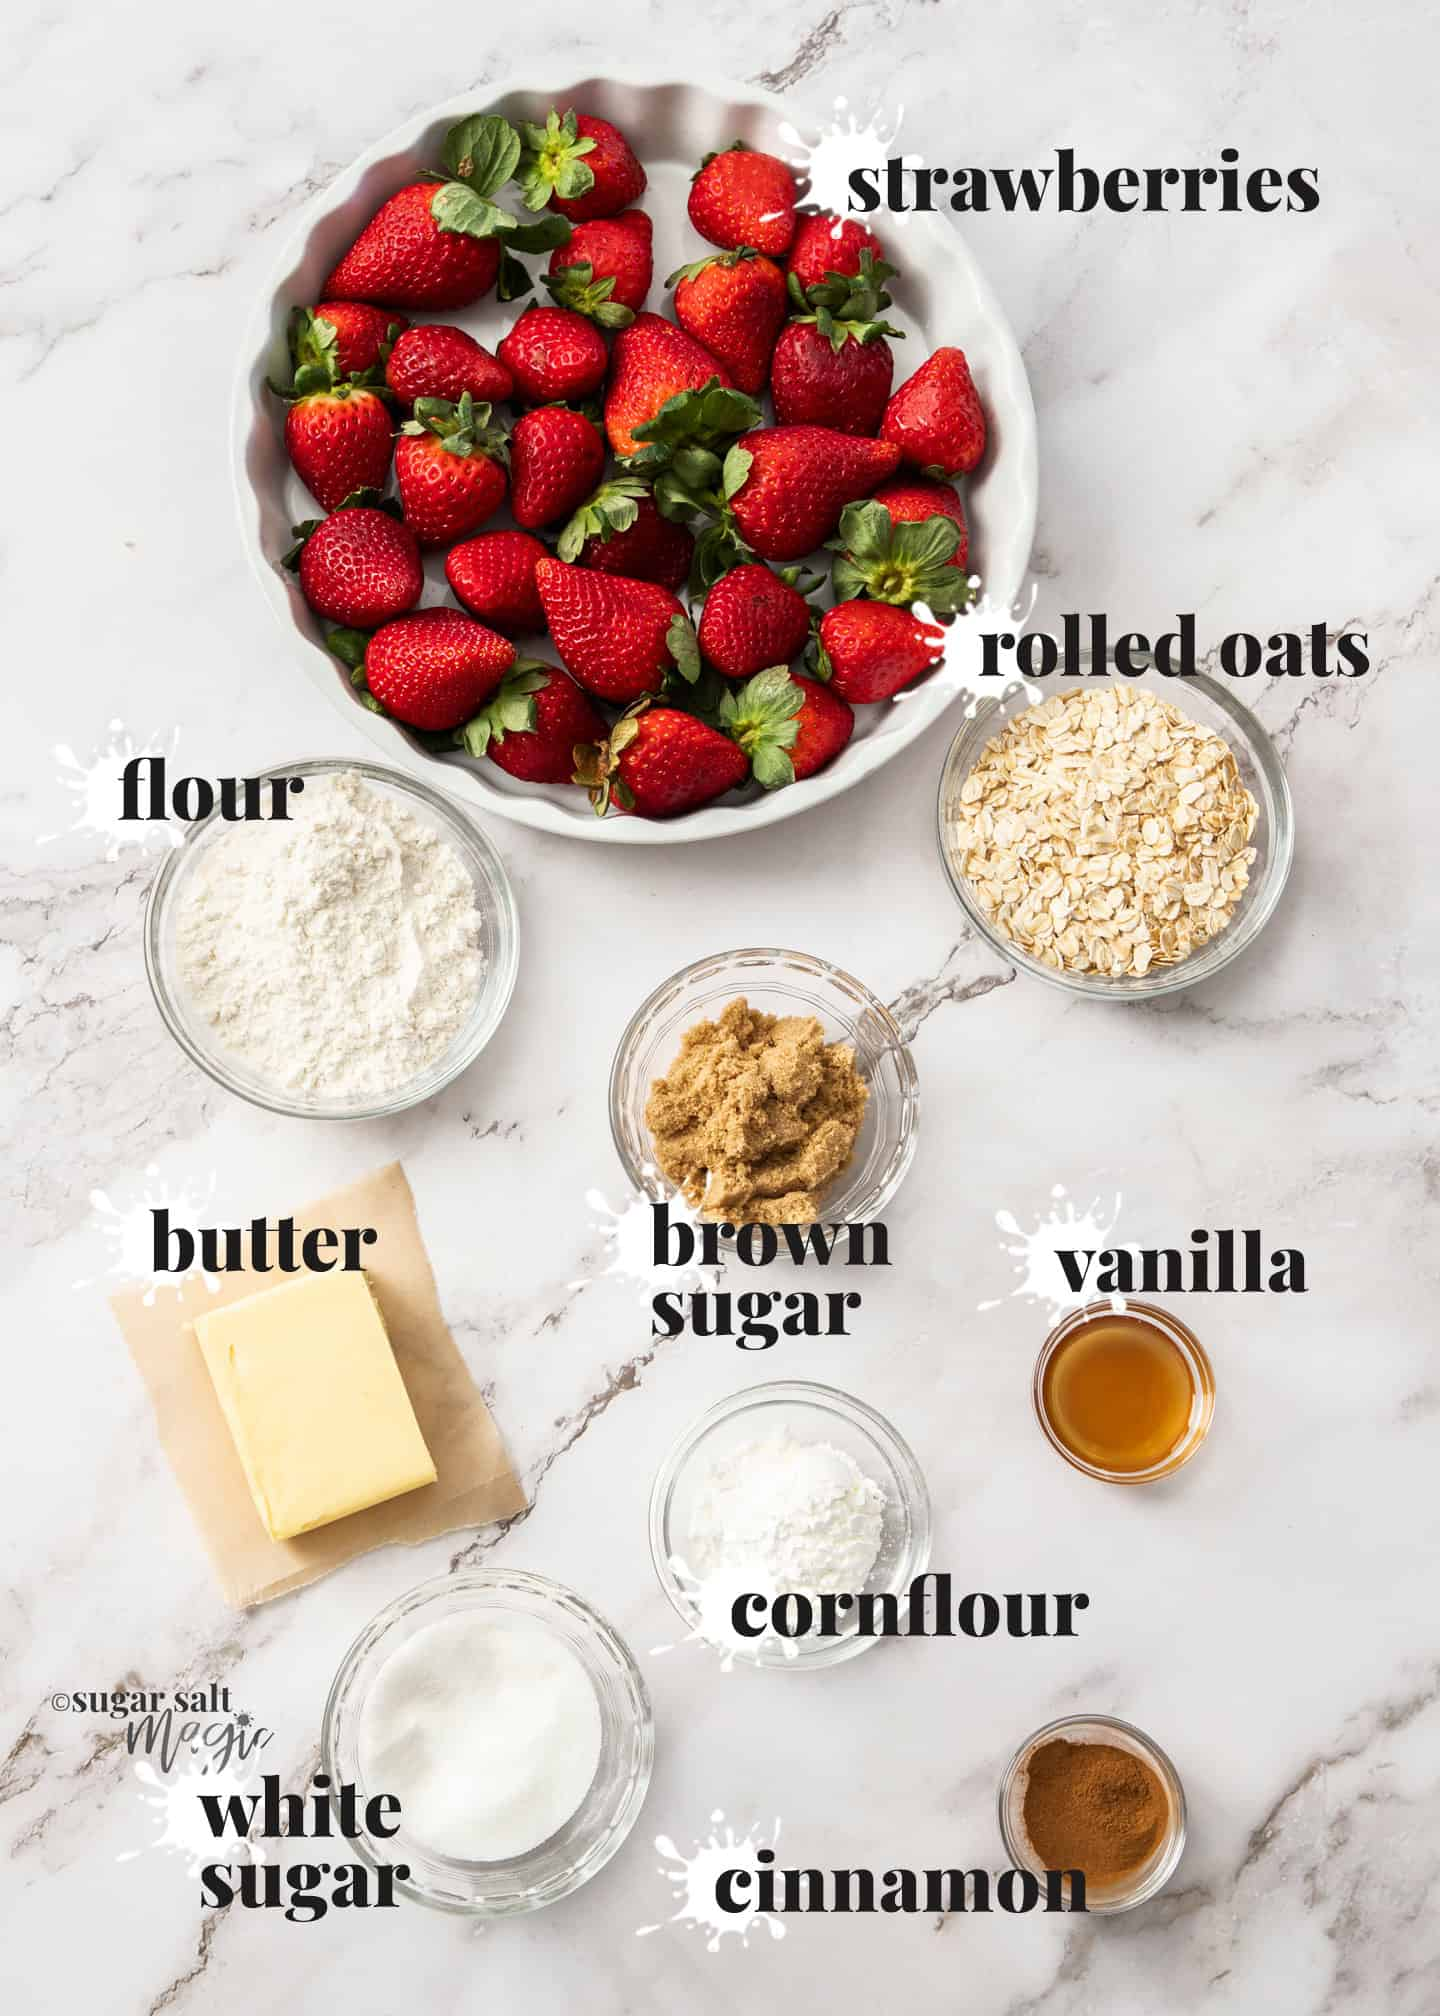 Ingredients for strawberry crisp on a white marble surface.